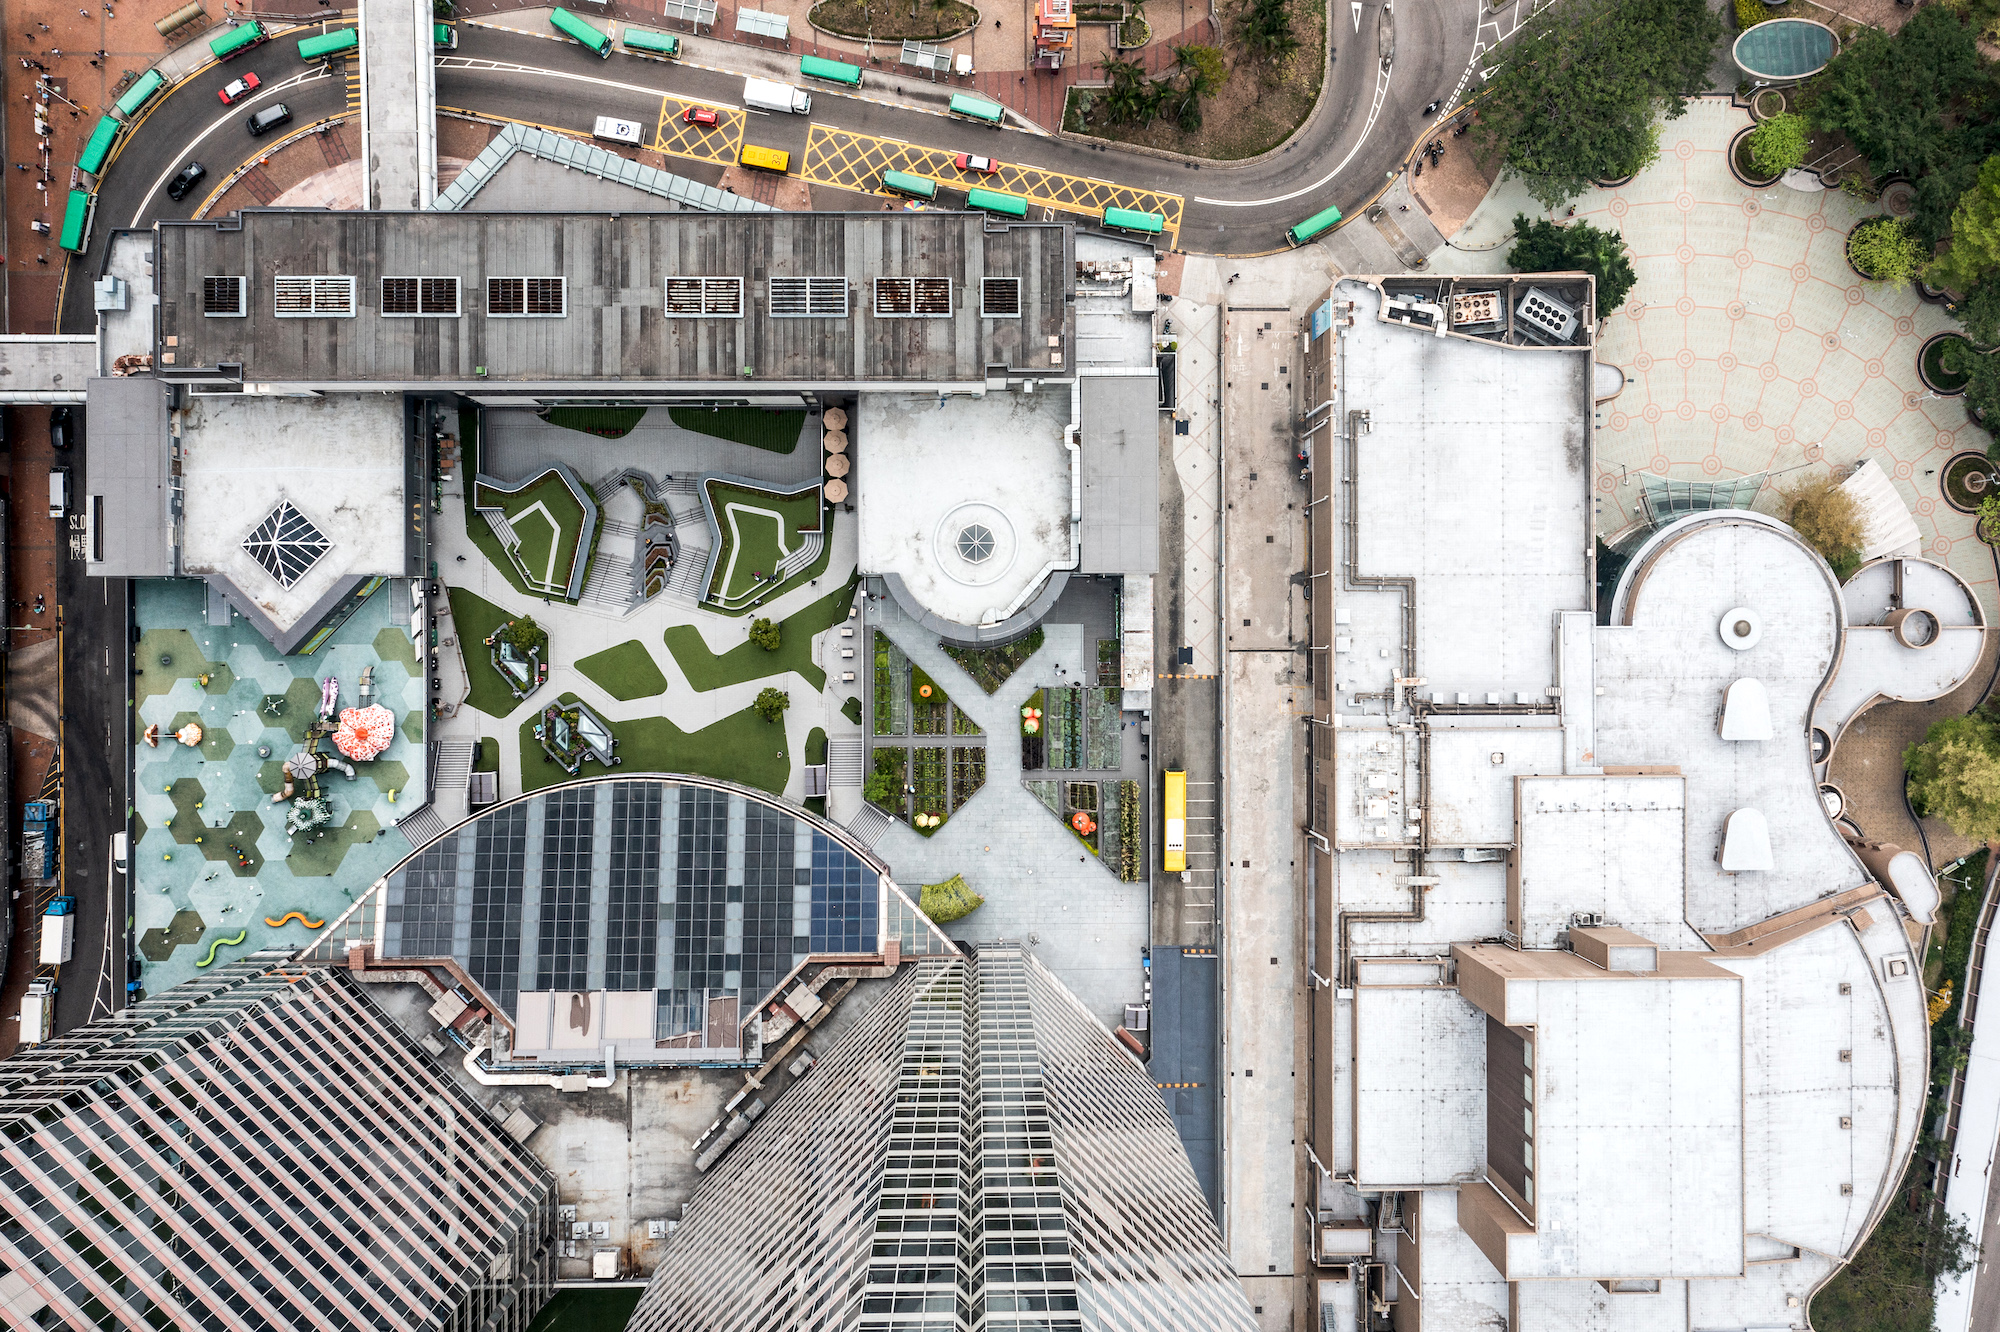 Most of Hong Kong's urban farms are on decommissioned helipads, shopping mall rooftops and public terraces